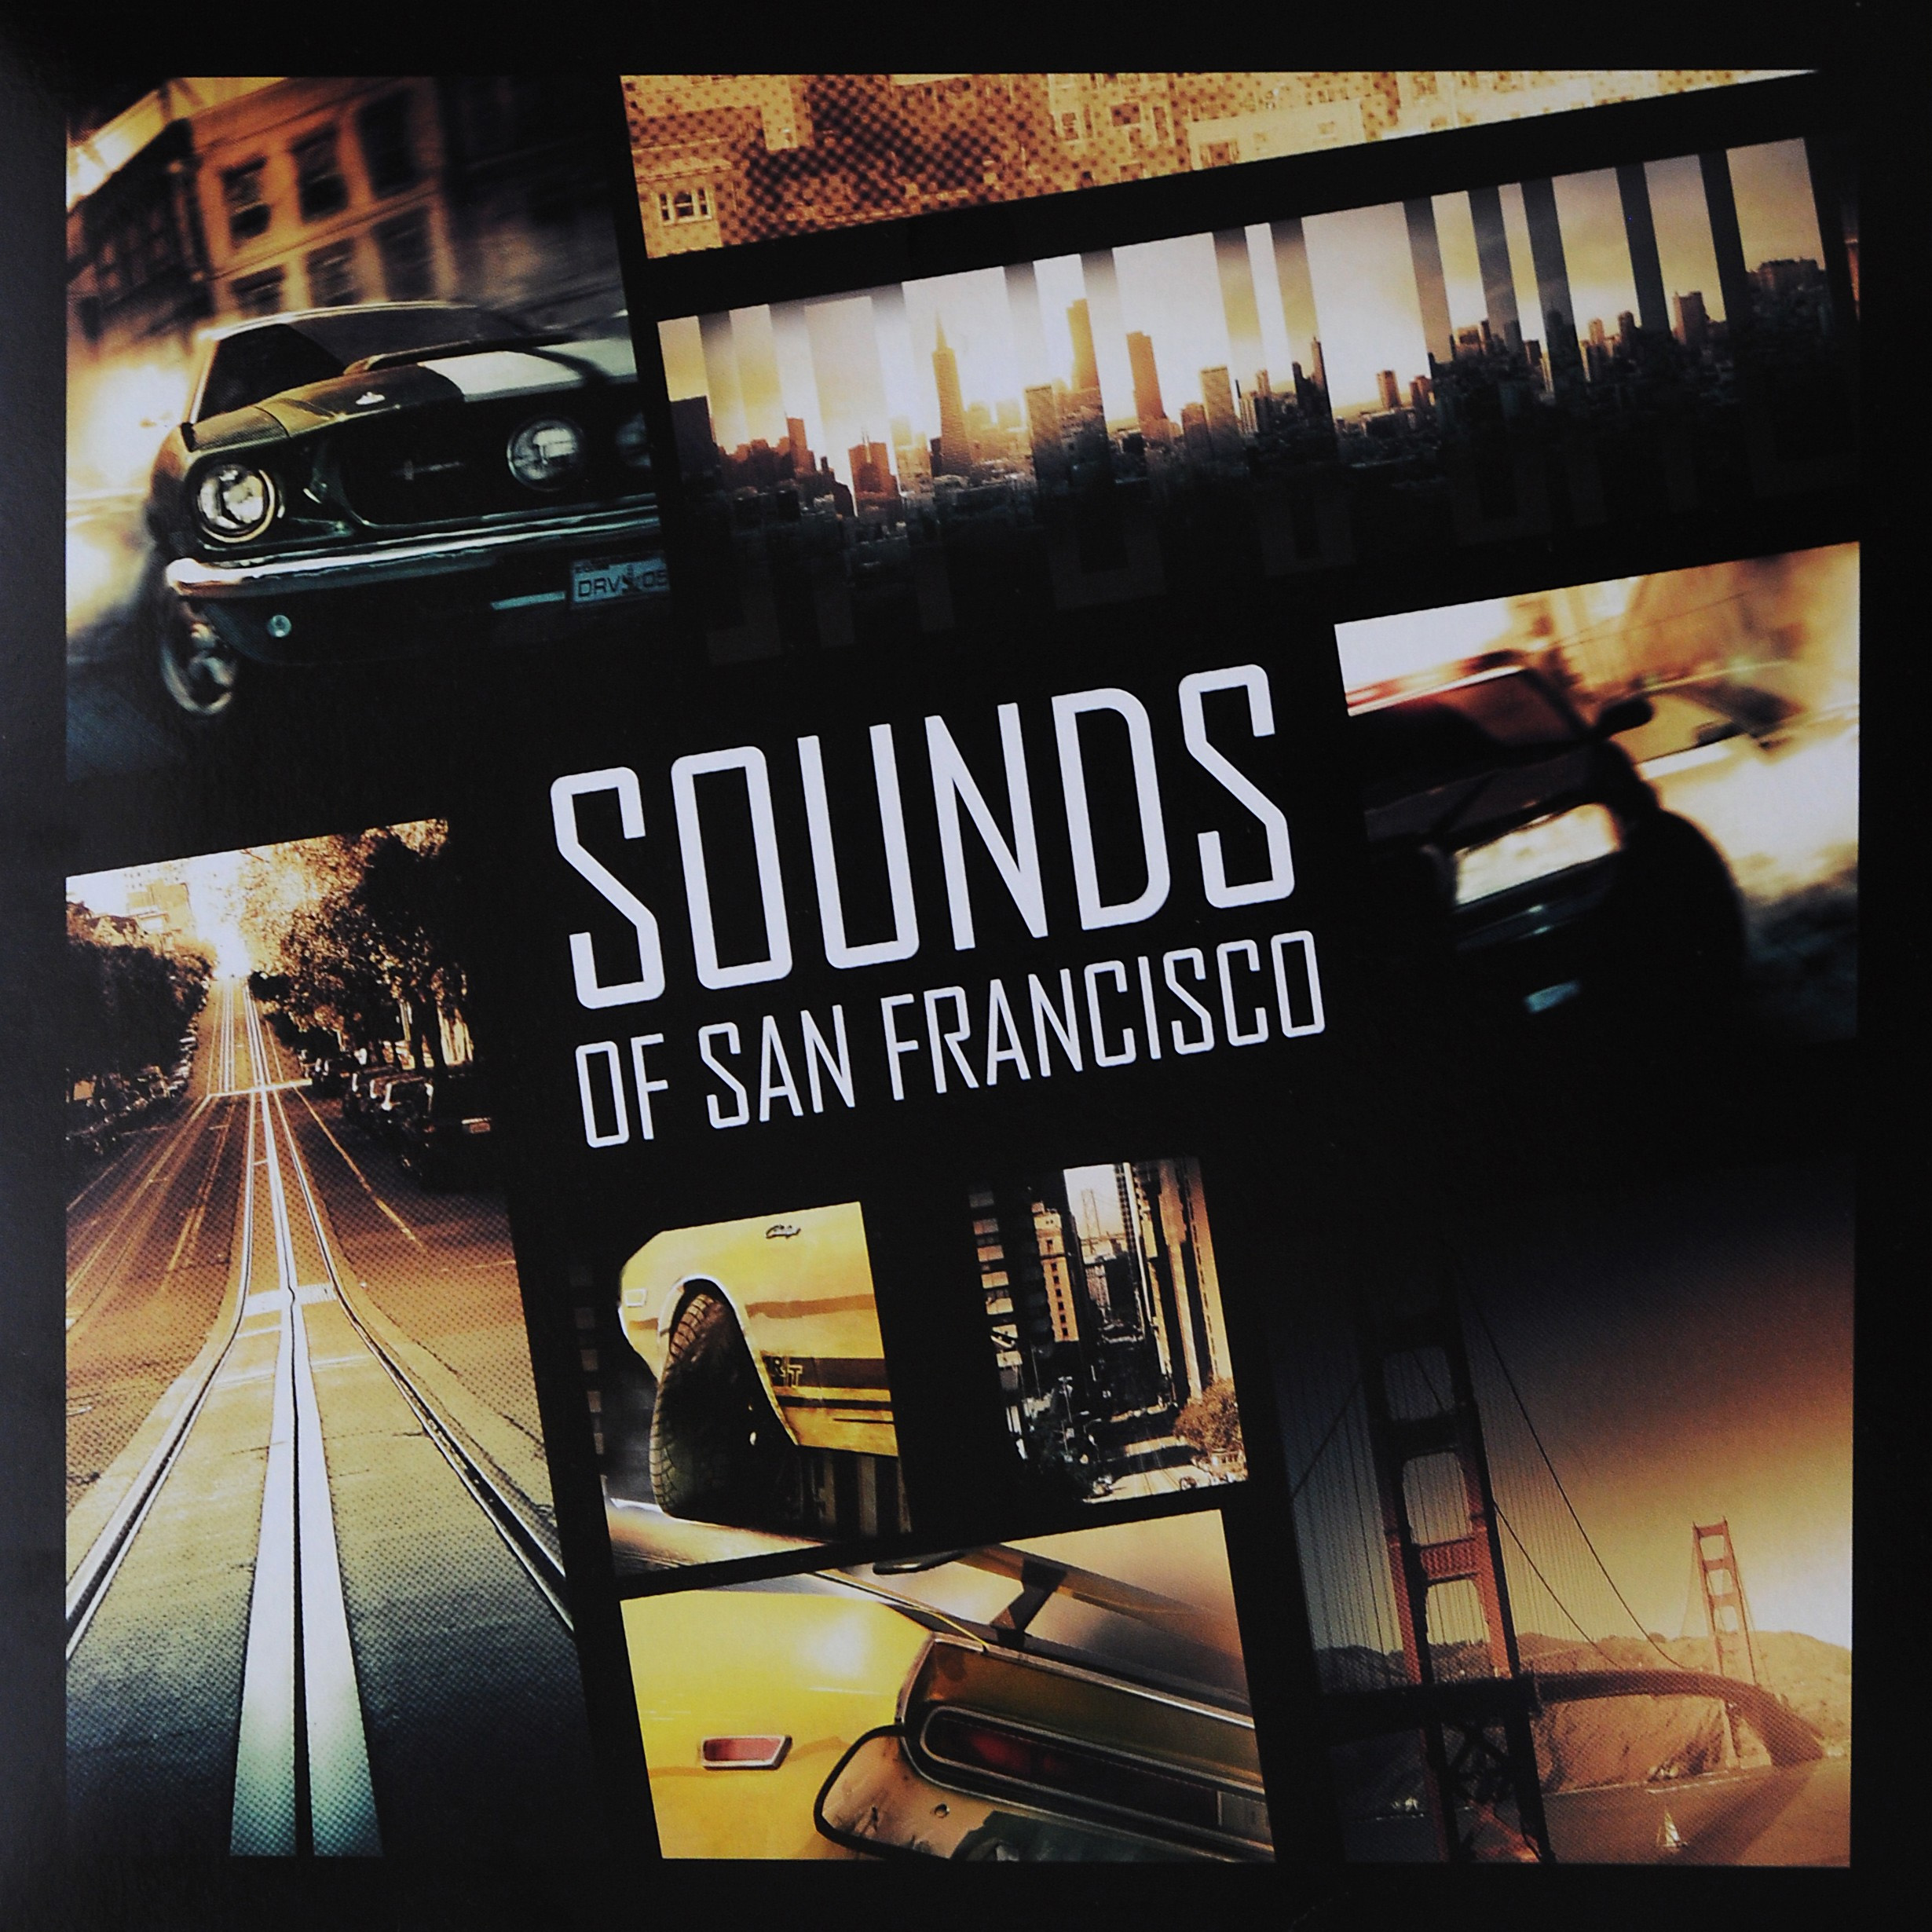 Sounds Of San Francisco Remix [Global Deejays] - YouTube